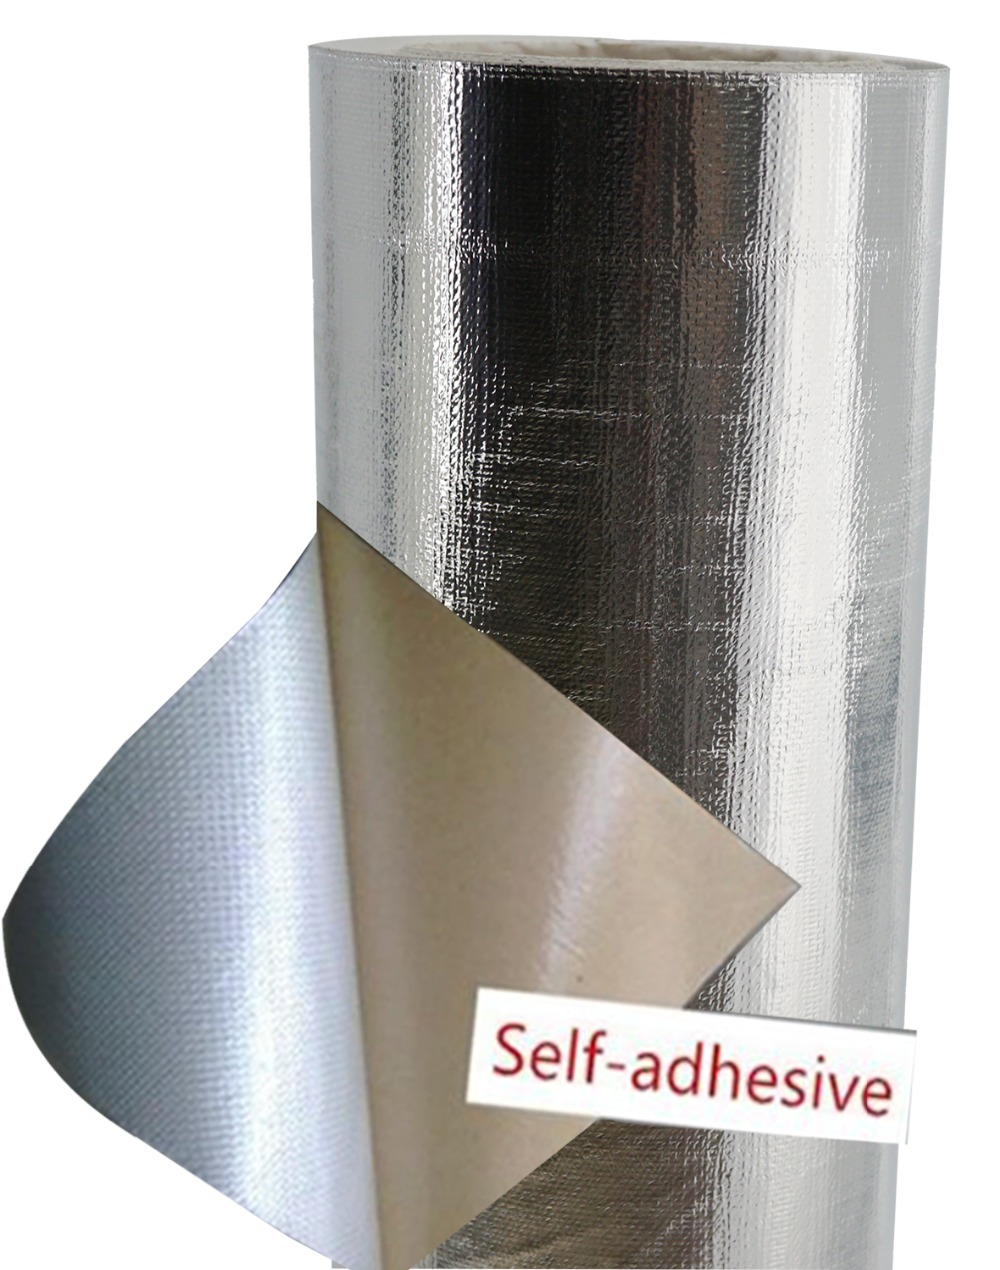 Fiberglass Cloth Insulation Self Adhesive Aluminum Fiberglass Heat Shield Protection Insulation Exhaust